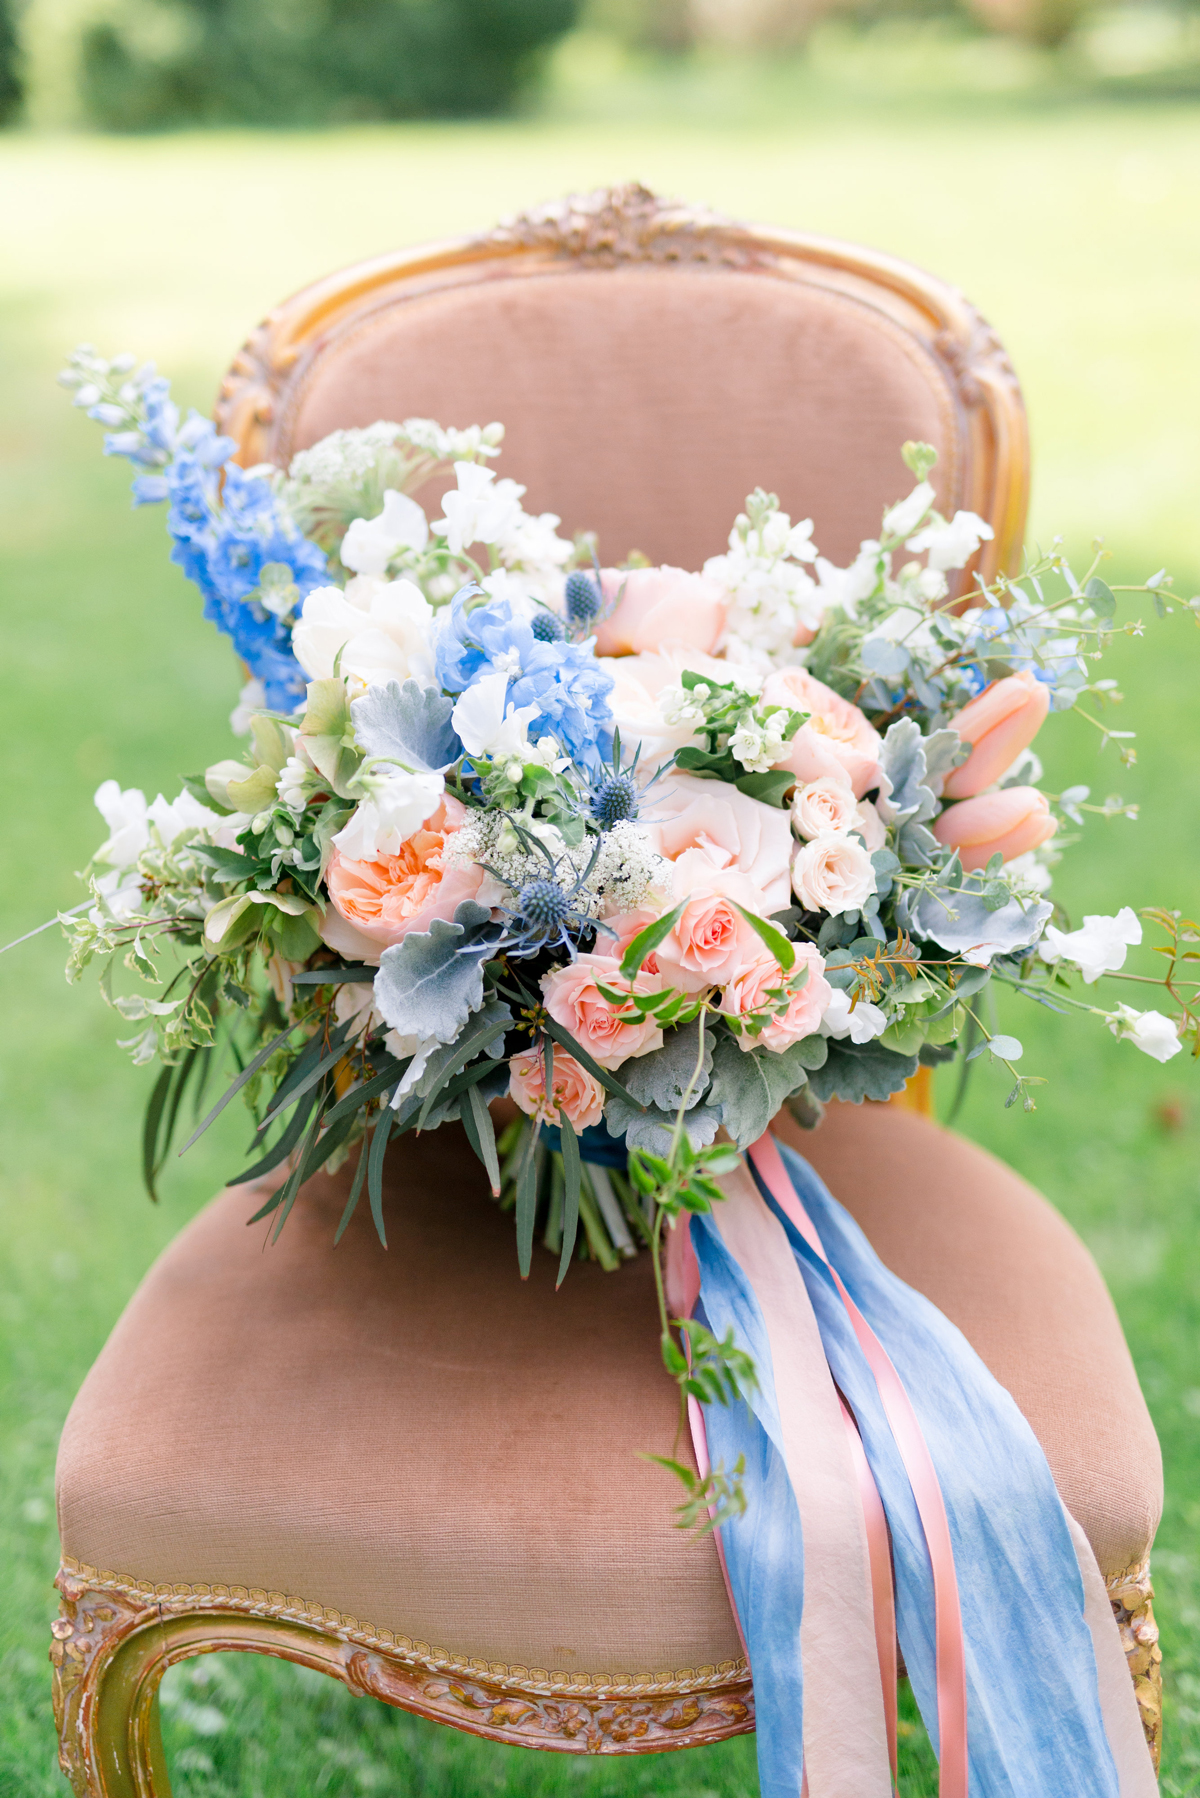 pink and blue floral wedding bouquet with matching ribbons